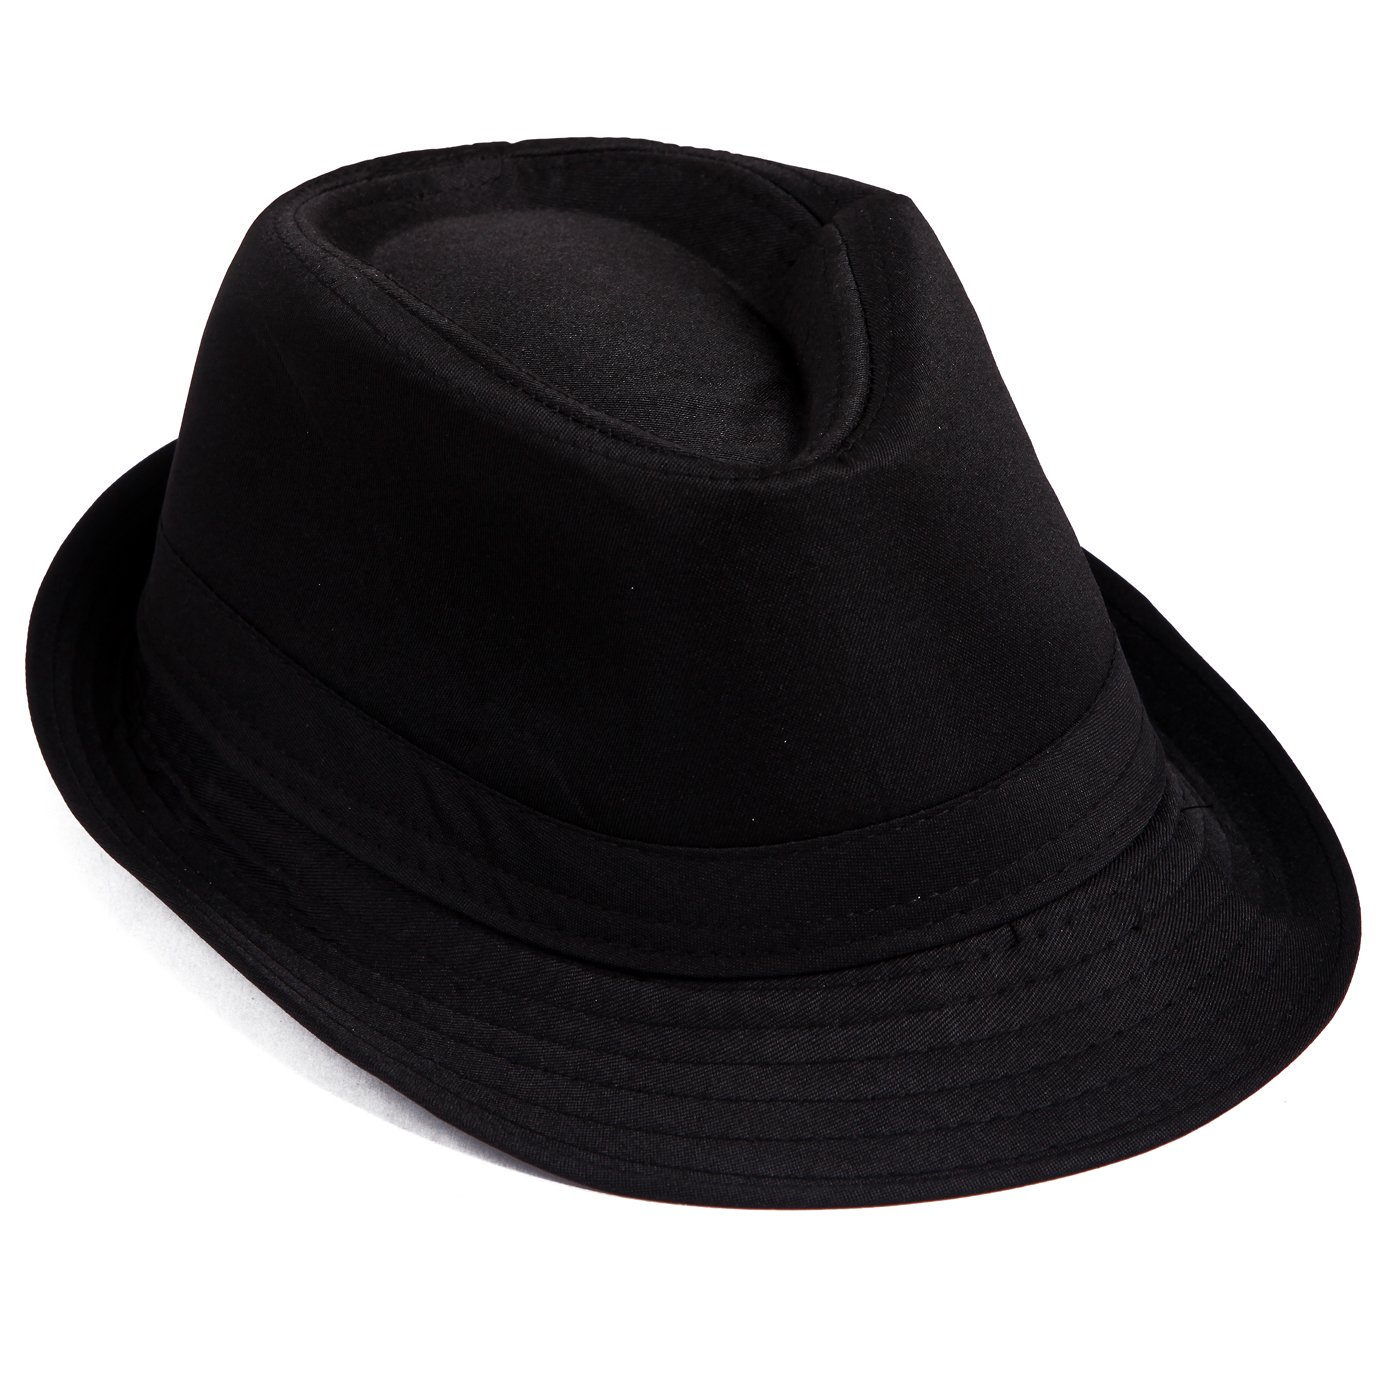 477279803ff HDE Kid s Short Brim Trilby Fedora Hat (Black) at Amazon Men s Clothing  store